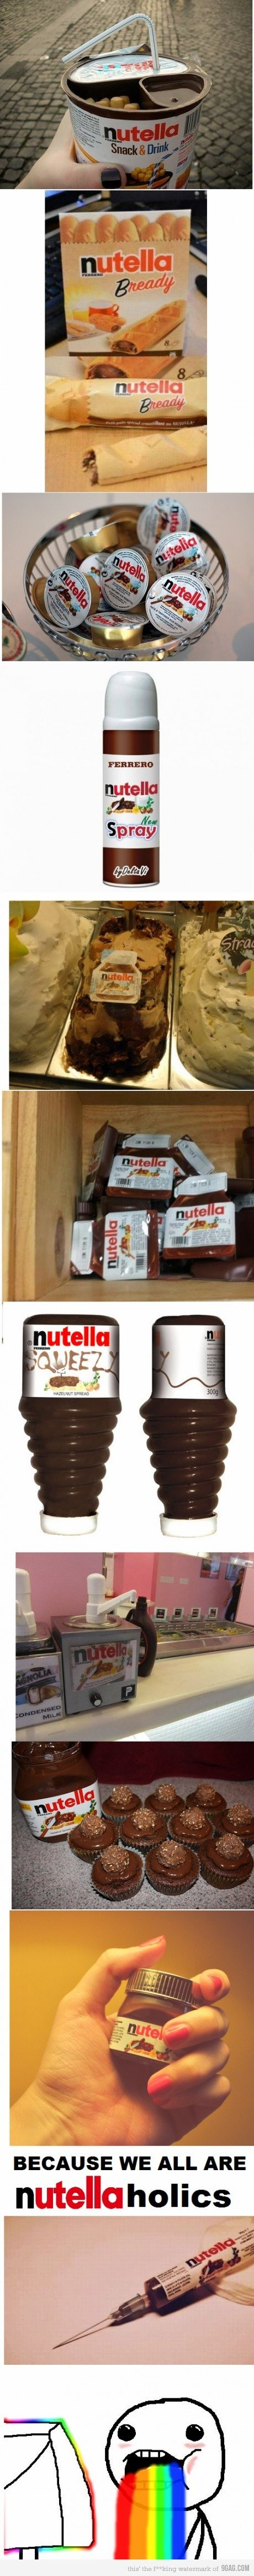 nutella - flash drives, nutella and dragon ball